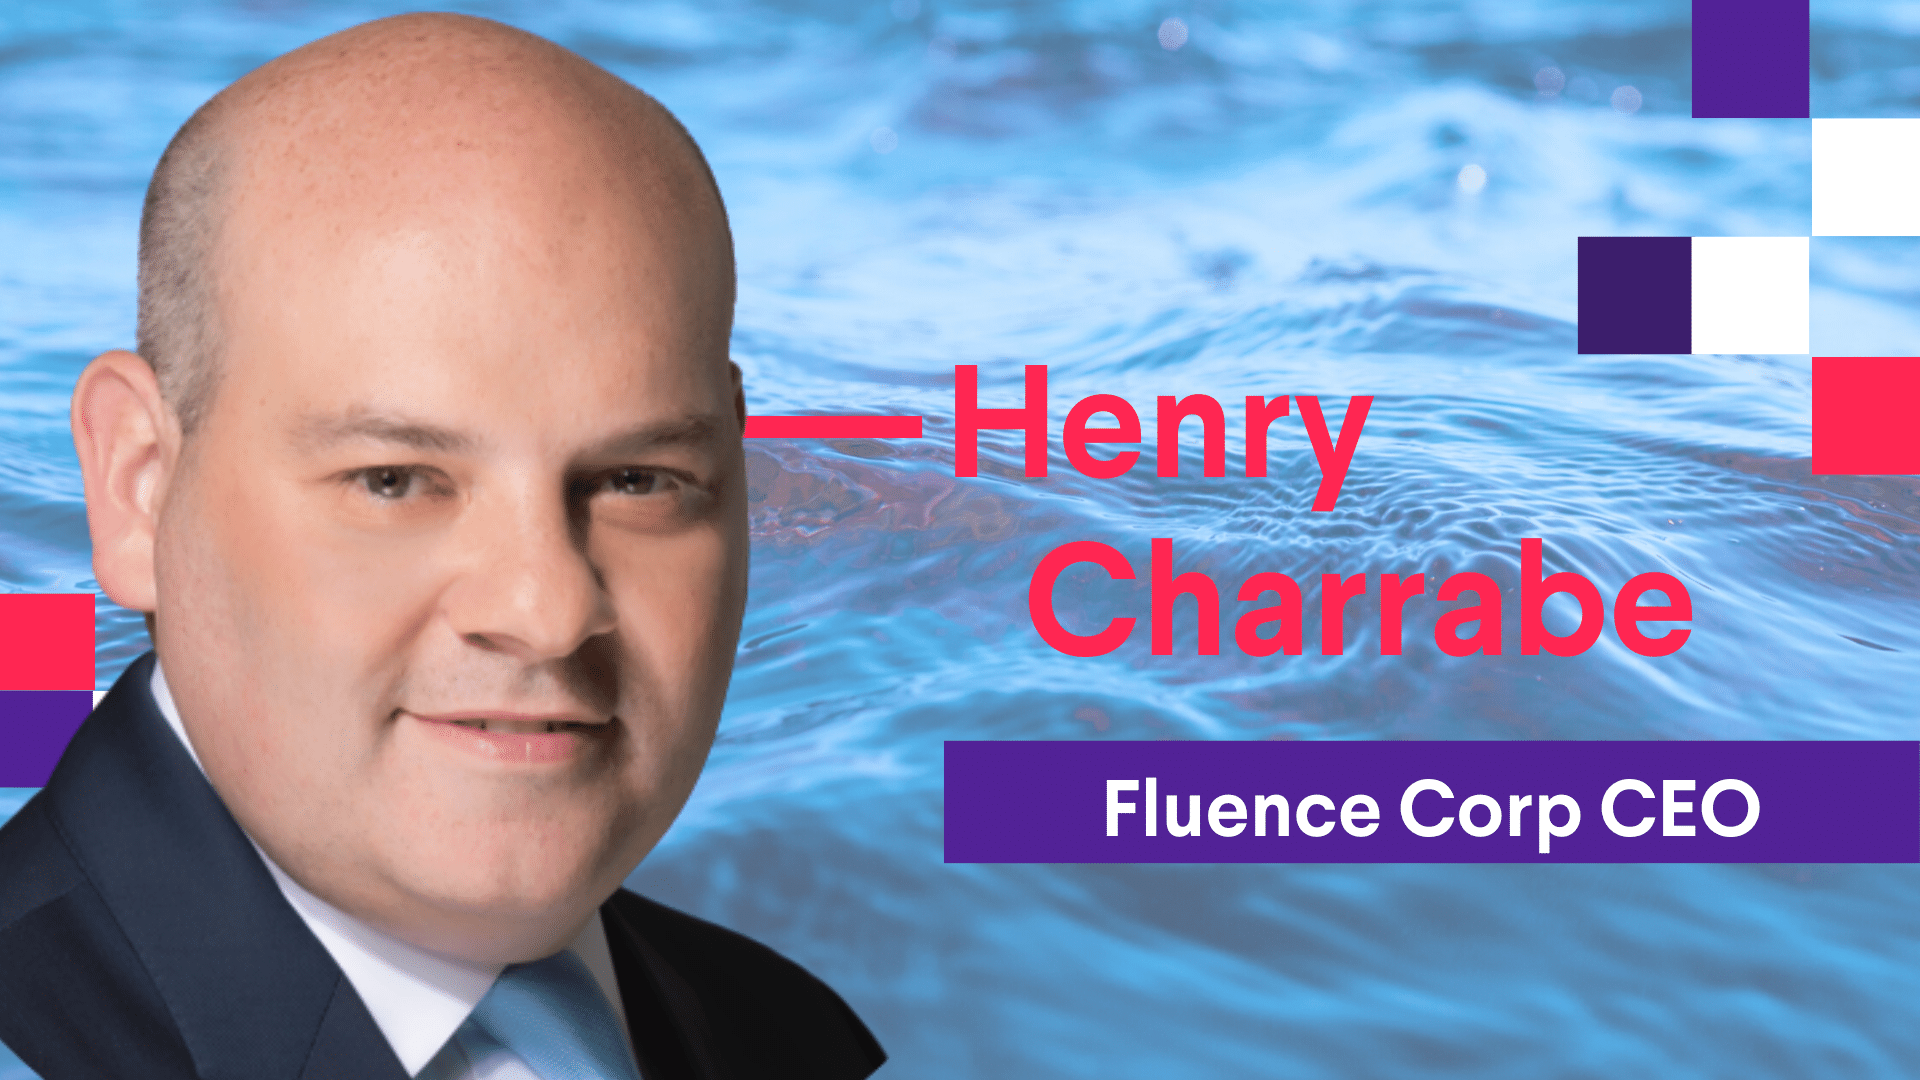 Fluence building a bridge to the future in Ivory Coast